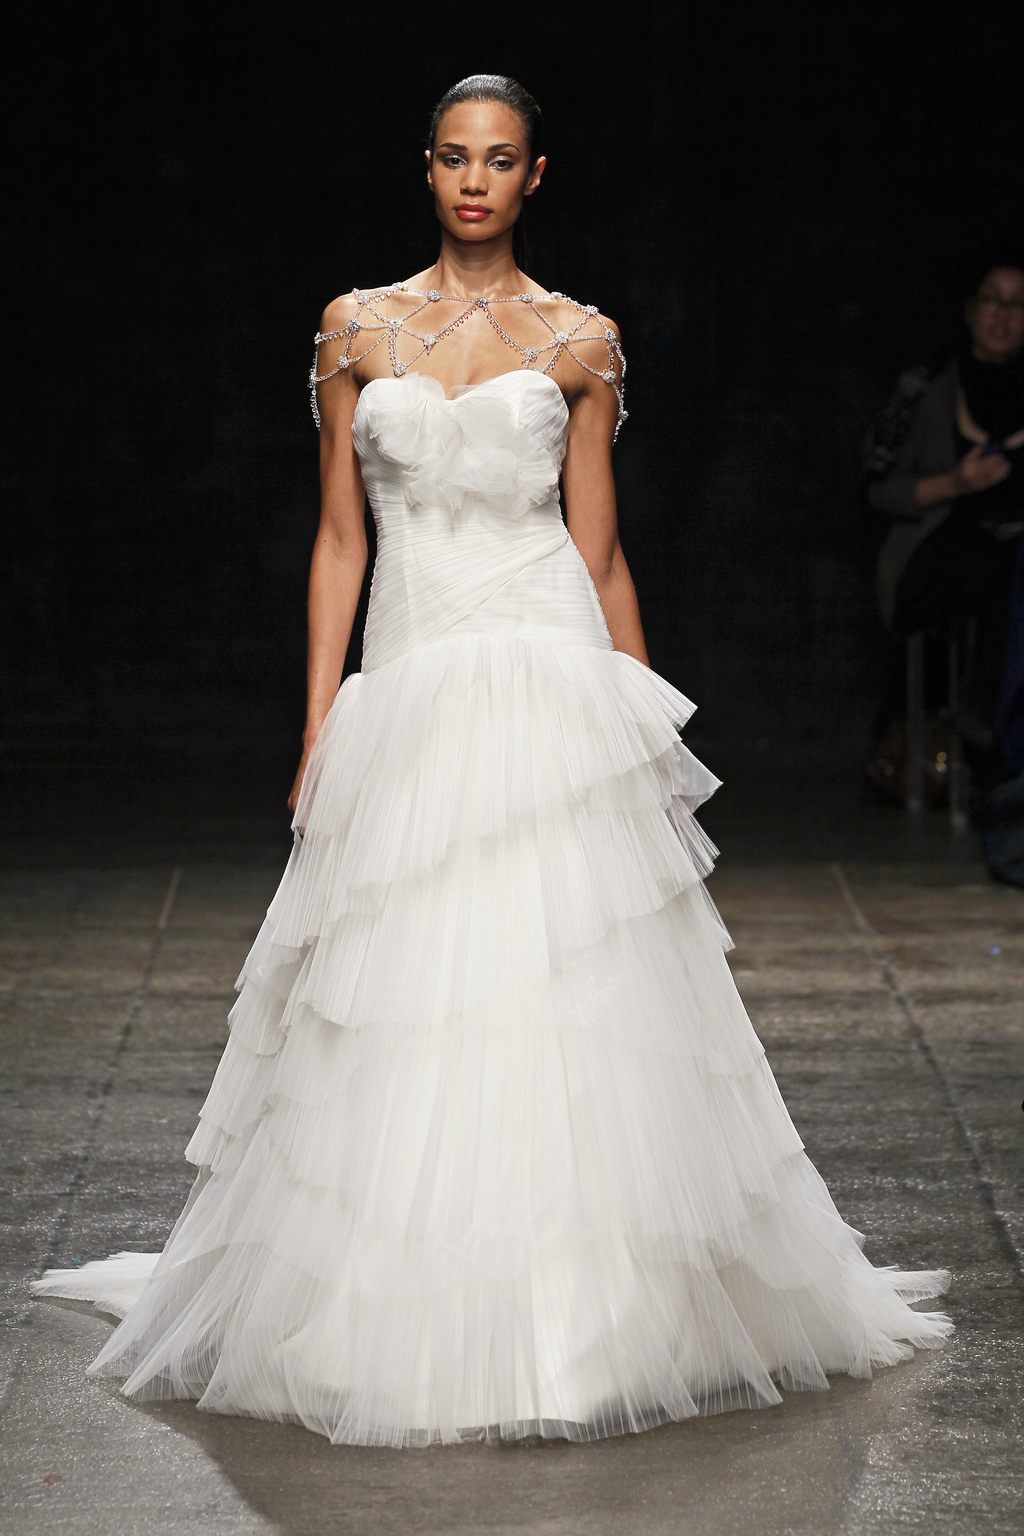 Spring-2013-wedding-dress-hayley-paige-bridal-gowns-6313-2.full